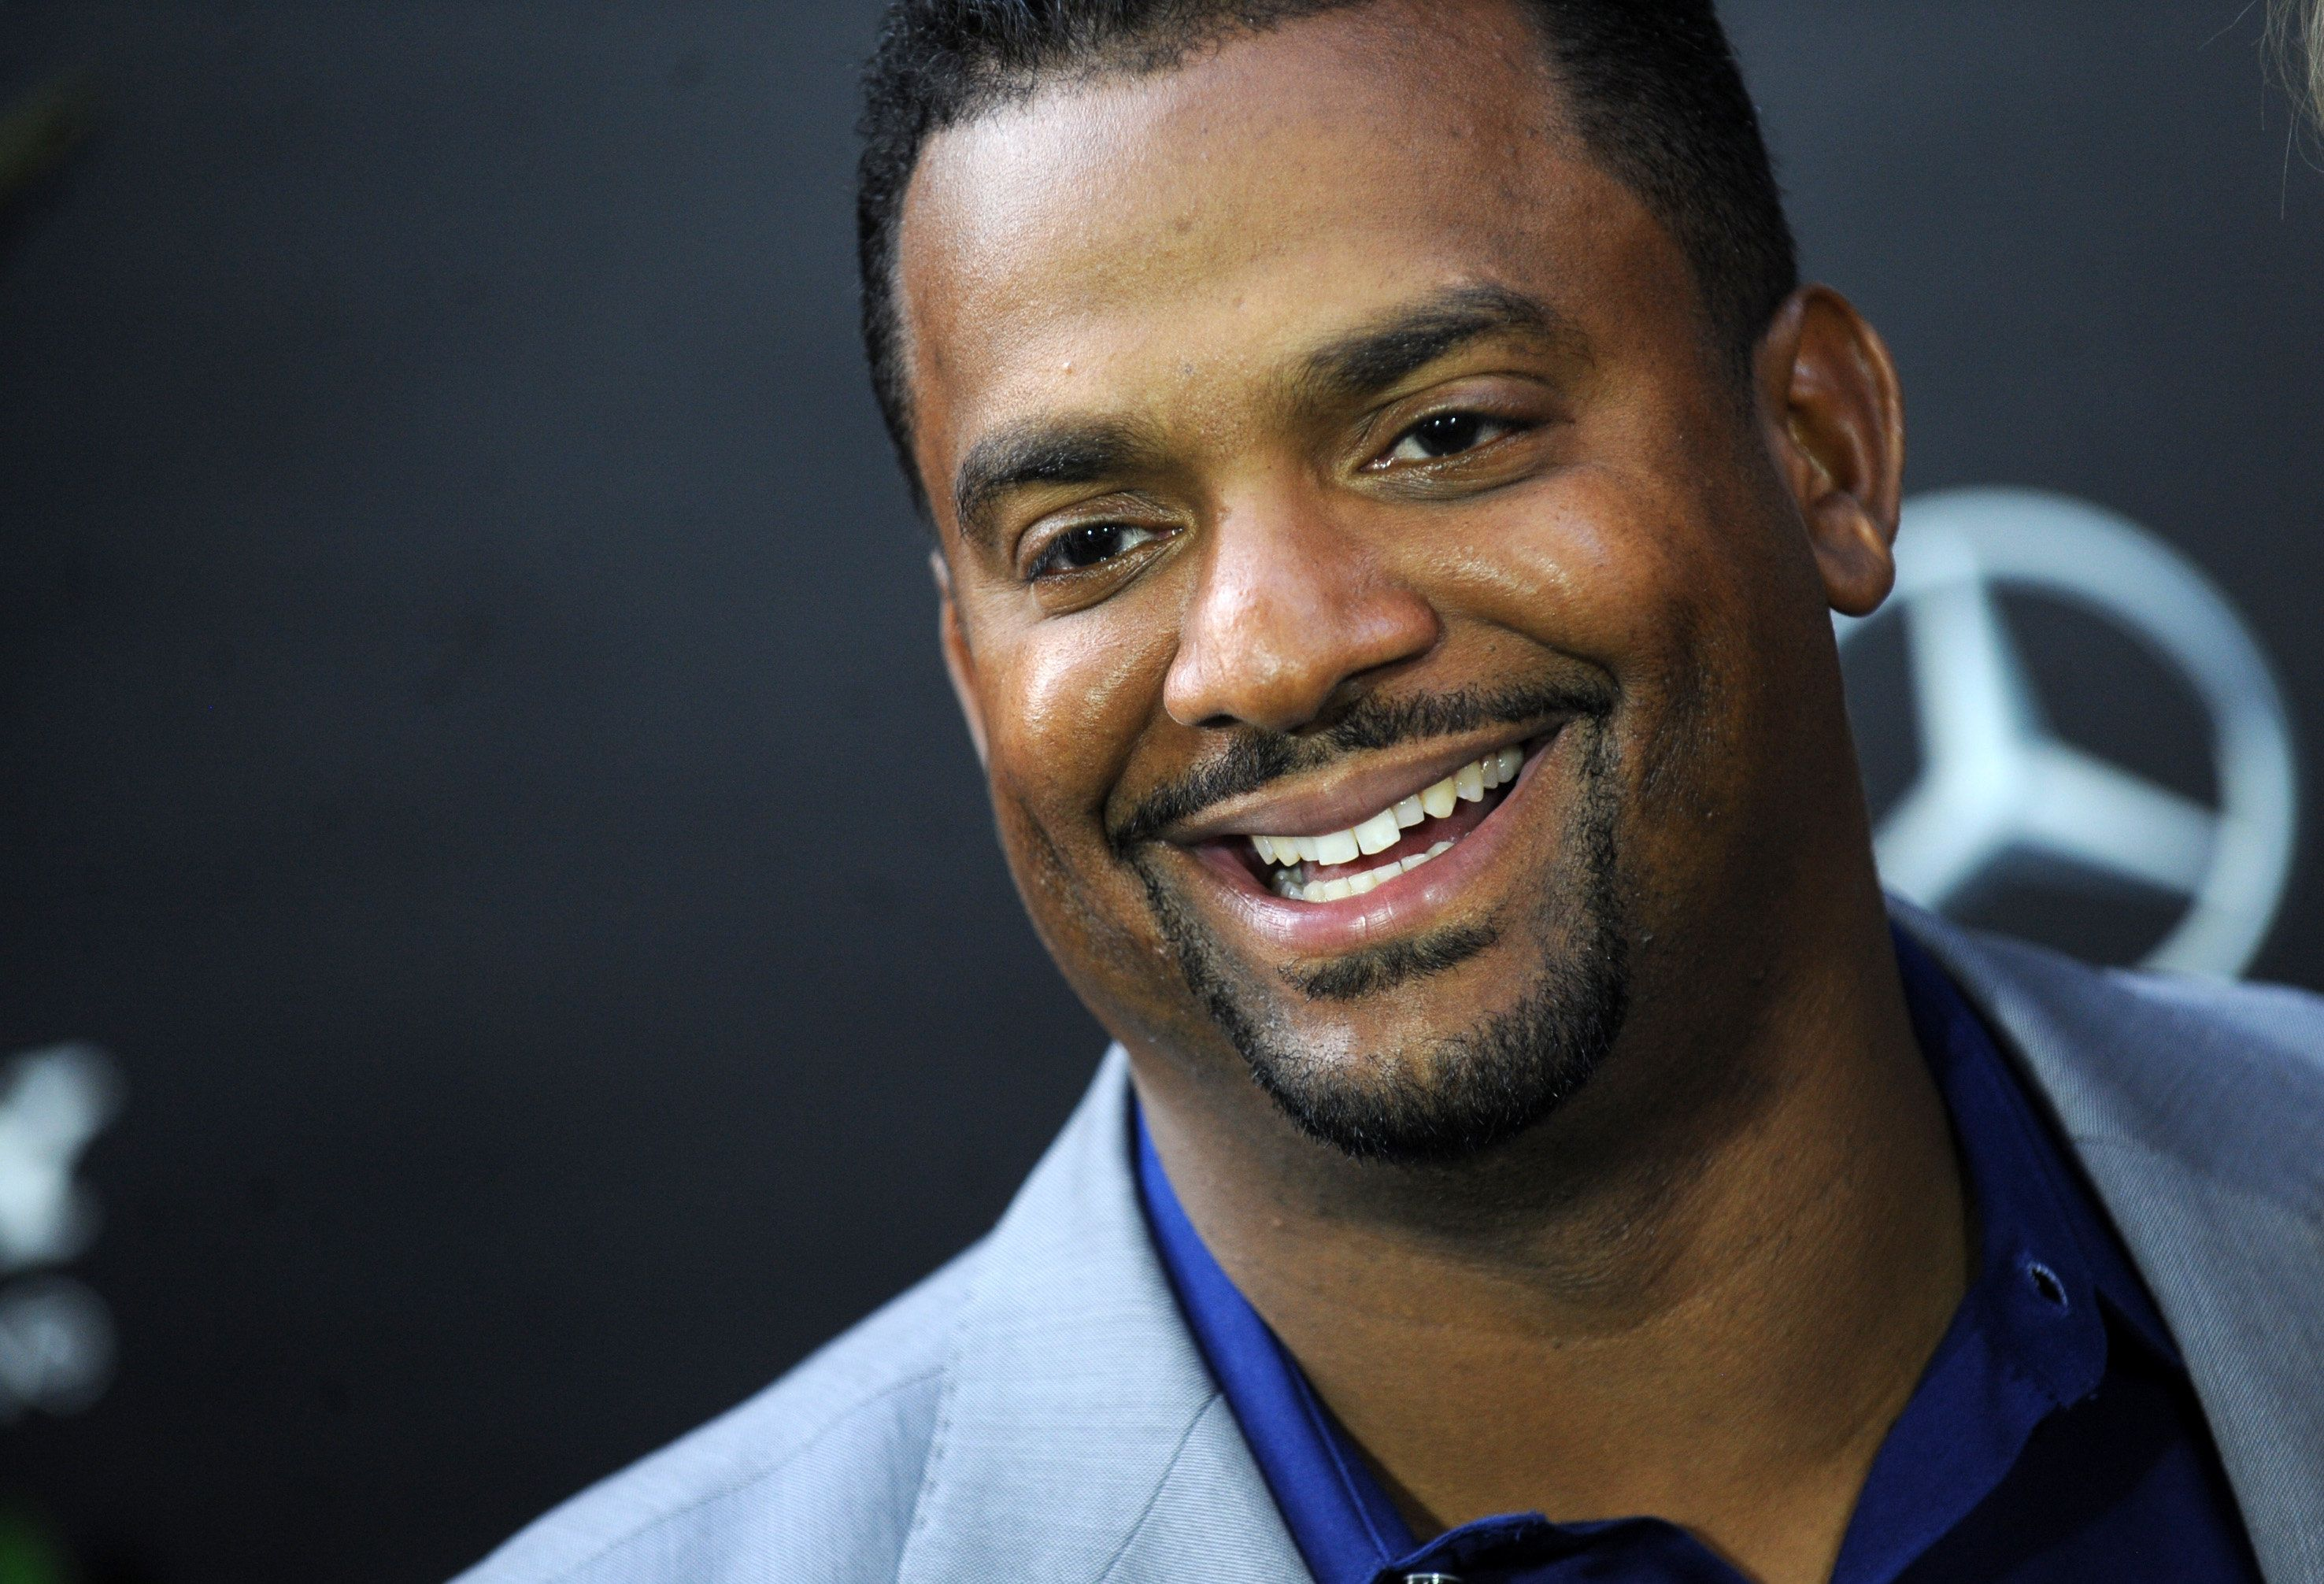 Alfonso Ribeiro attends the 'After Earth' premiere at the Ziegfeld Theater in New York on May 29, 2013.